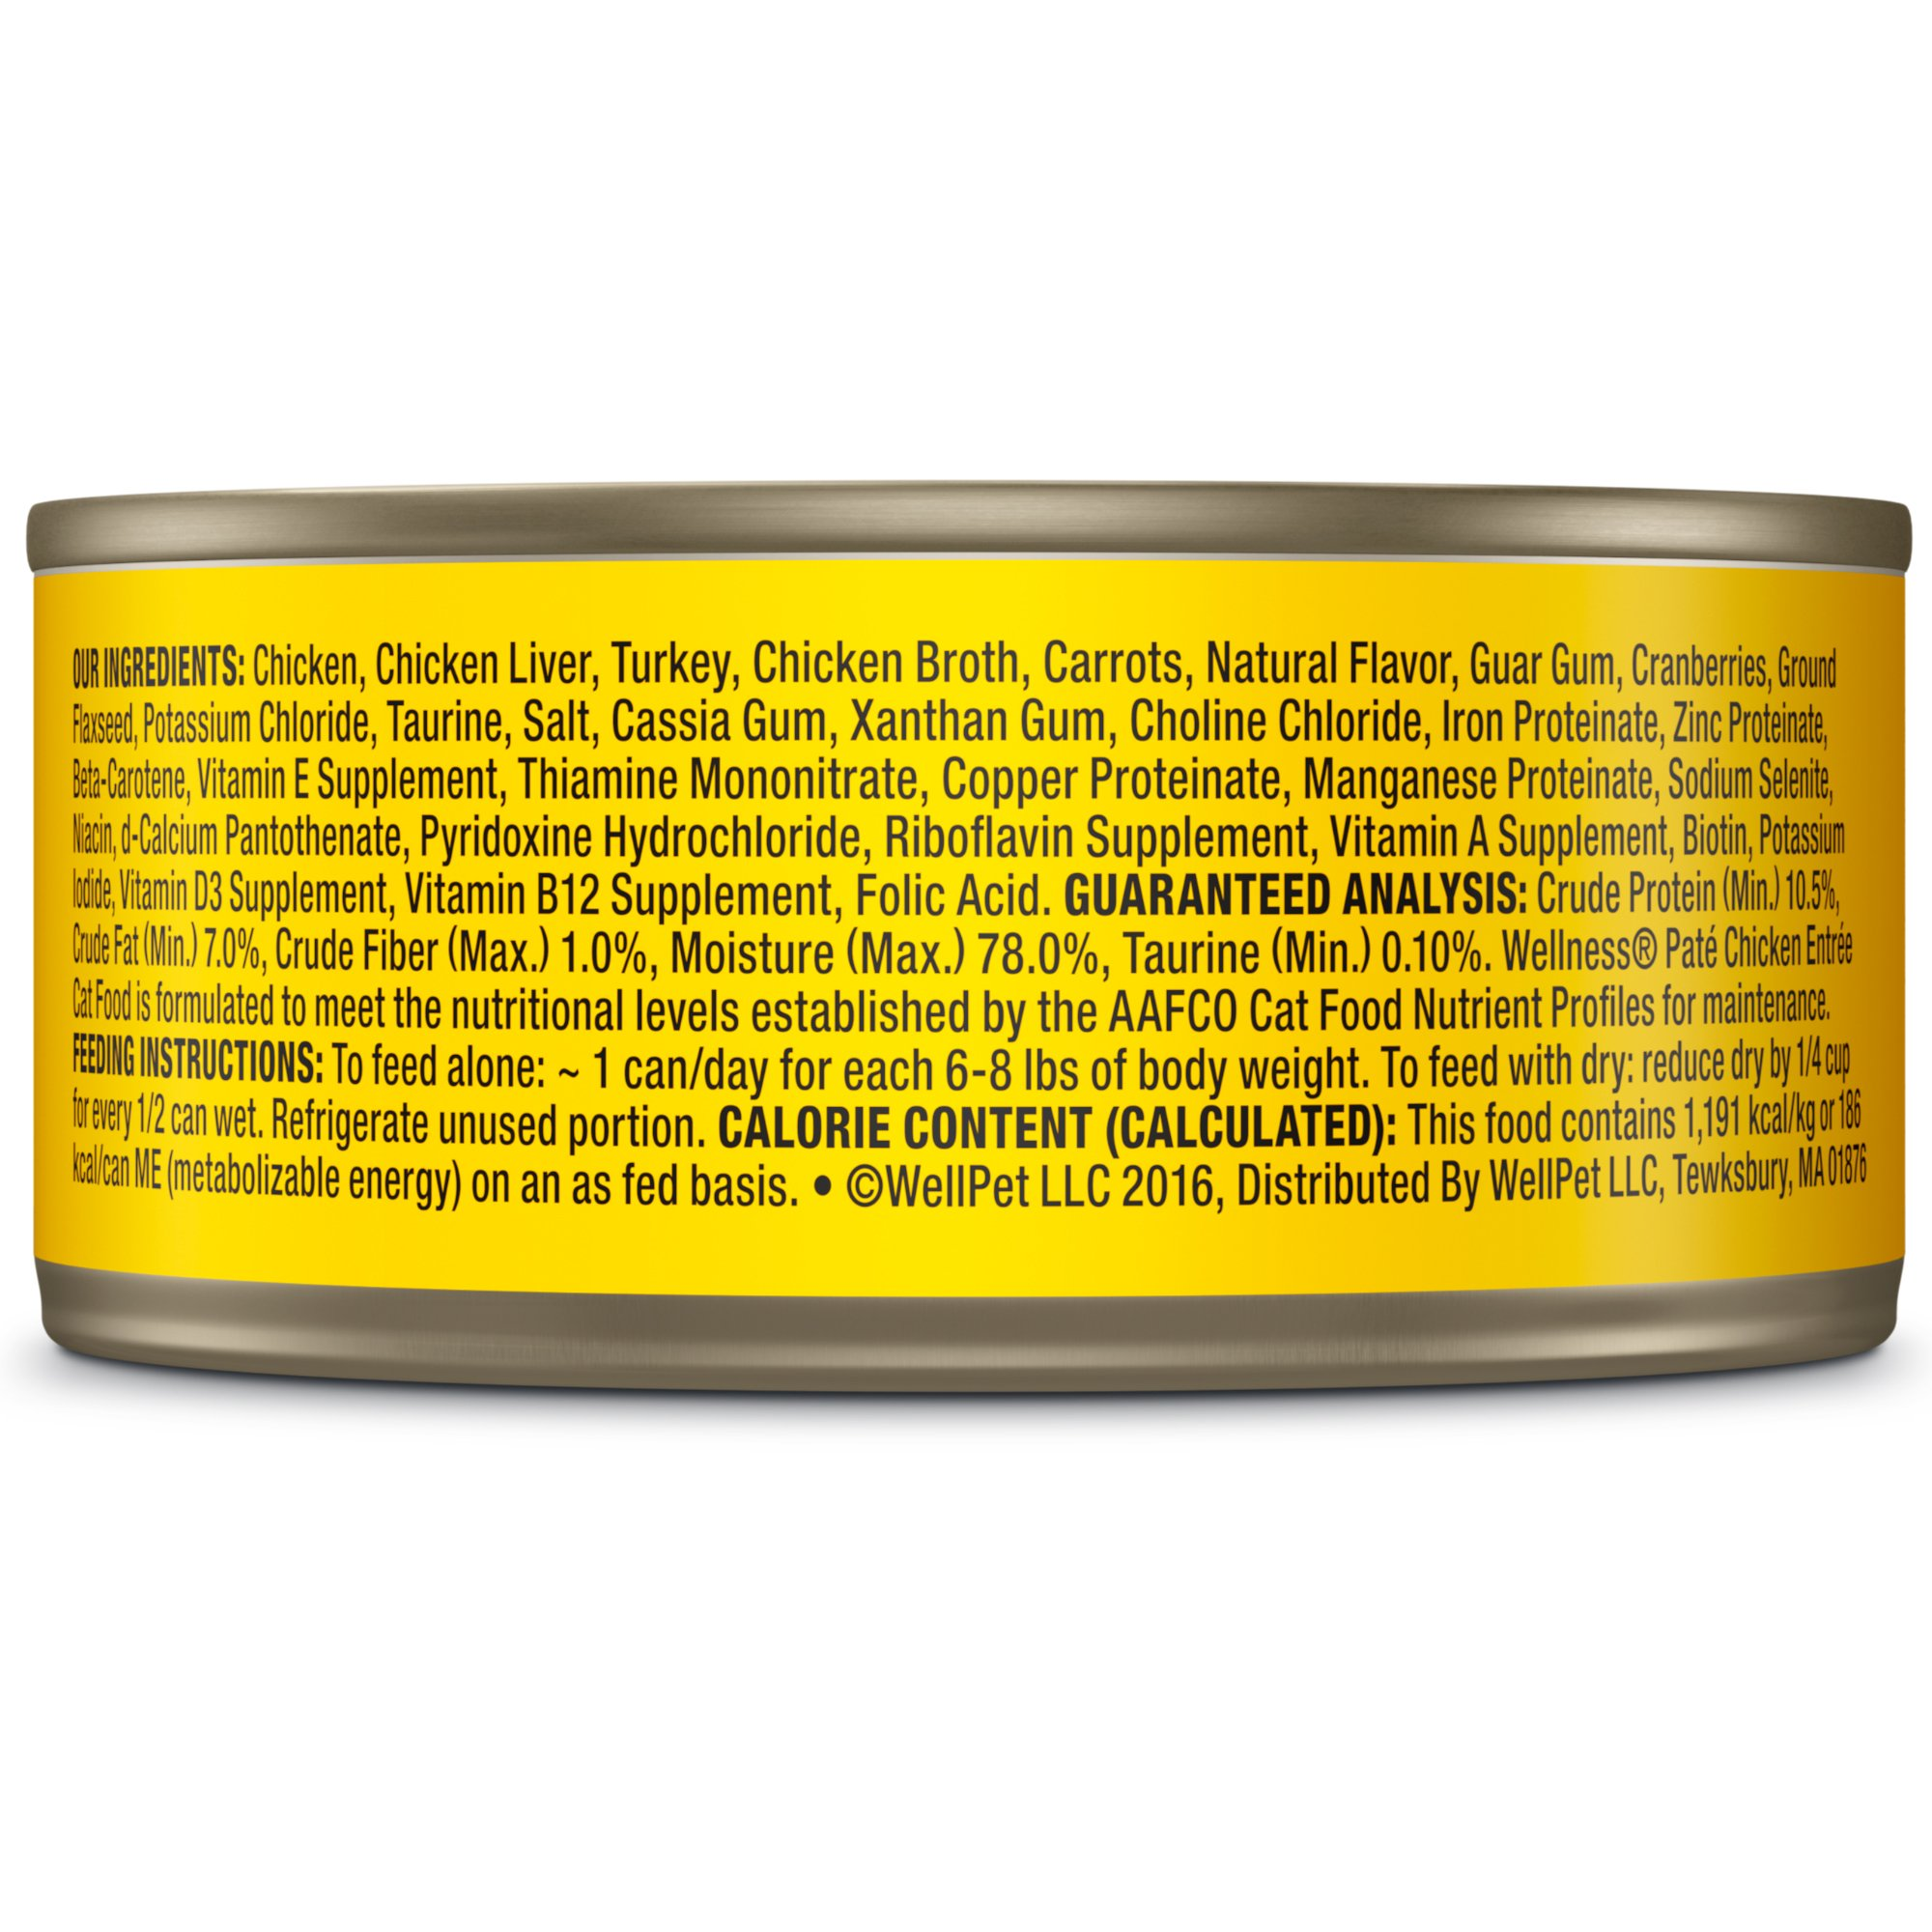 Wellness-Complete-Health-Natural-Grain-Free-Chicken-Pate-Wet-Cat-Food thumbnail 5